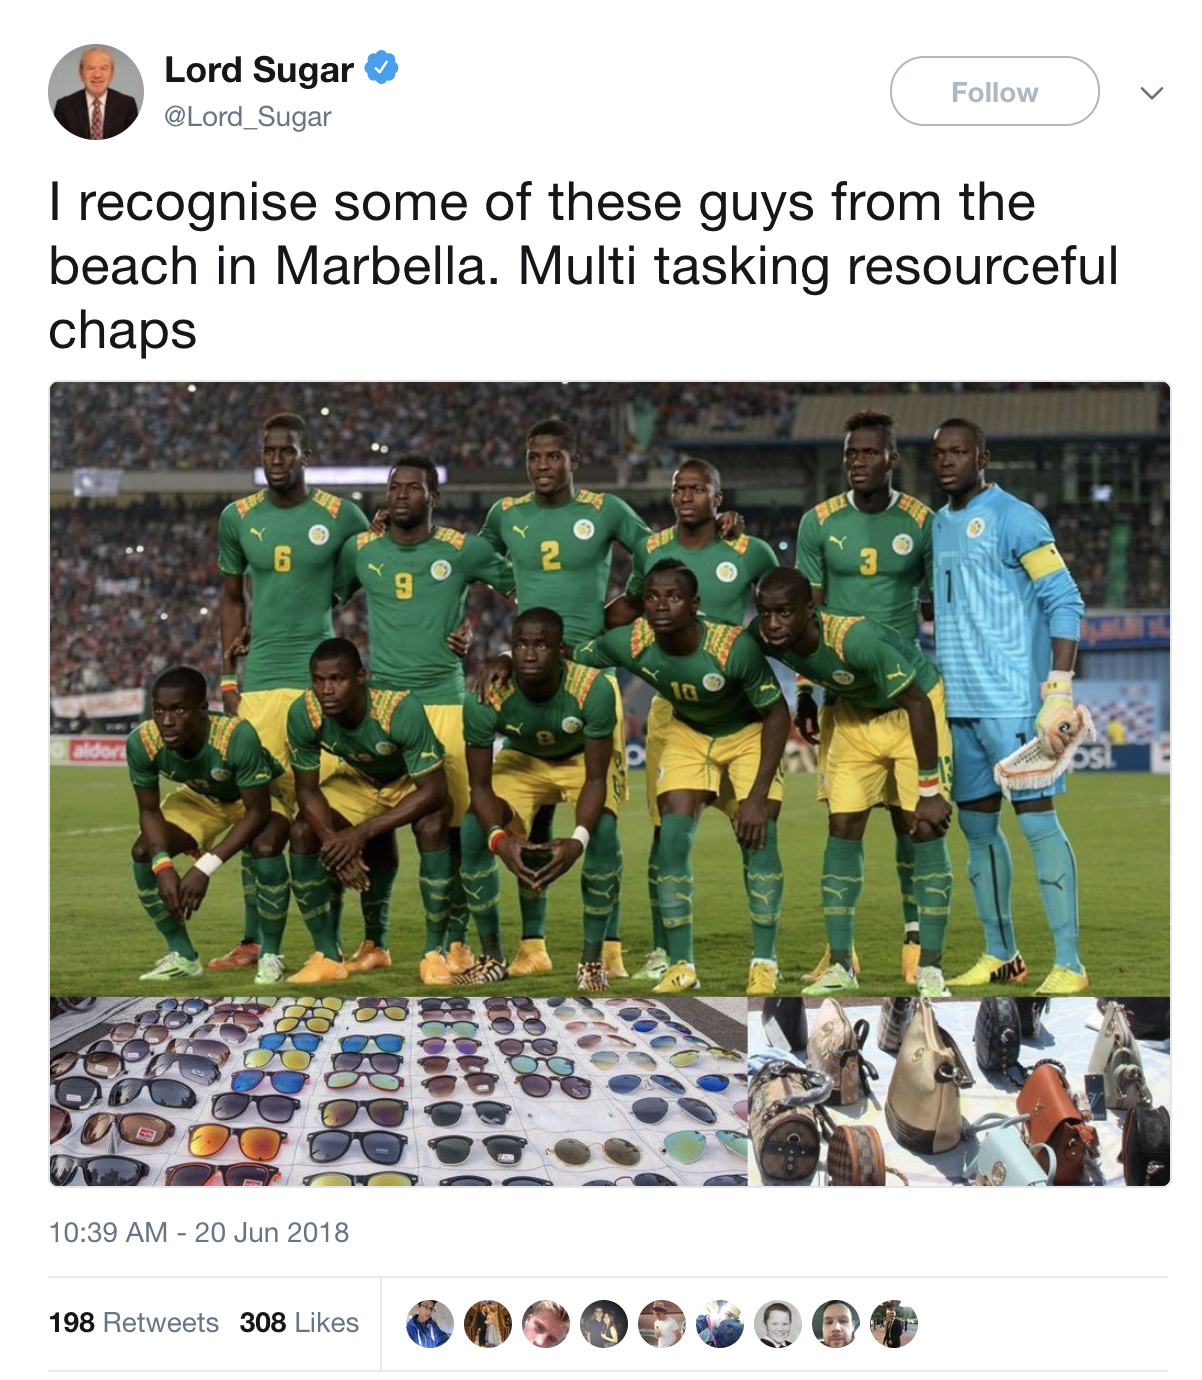 Outrage as Lord Sugar tweets 'racist' image